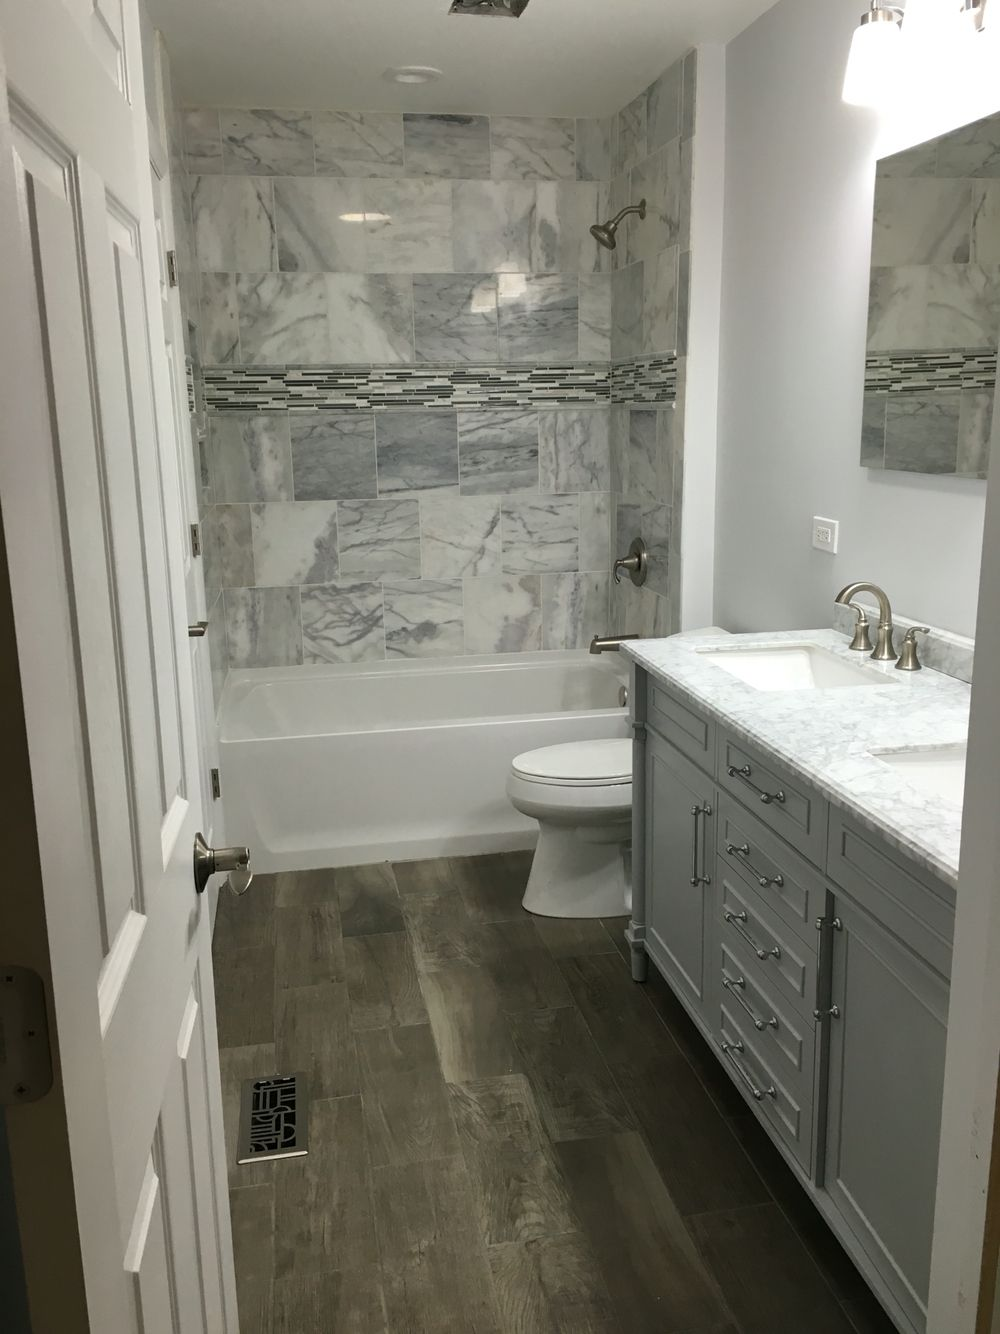 Bathroom Remodeling San Antonio Tx Remodelling Home Design Ideas - Bathroom remodel san antonio